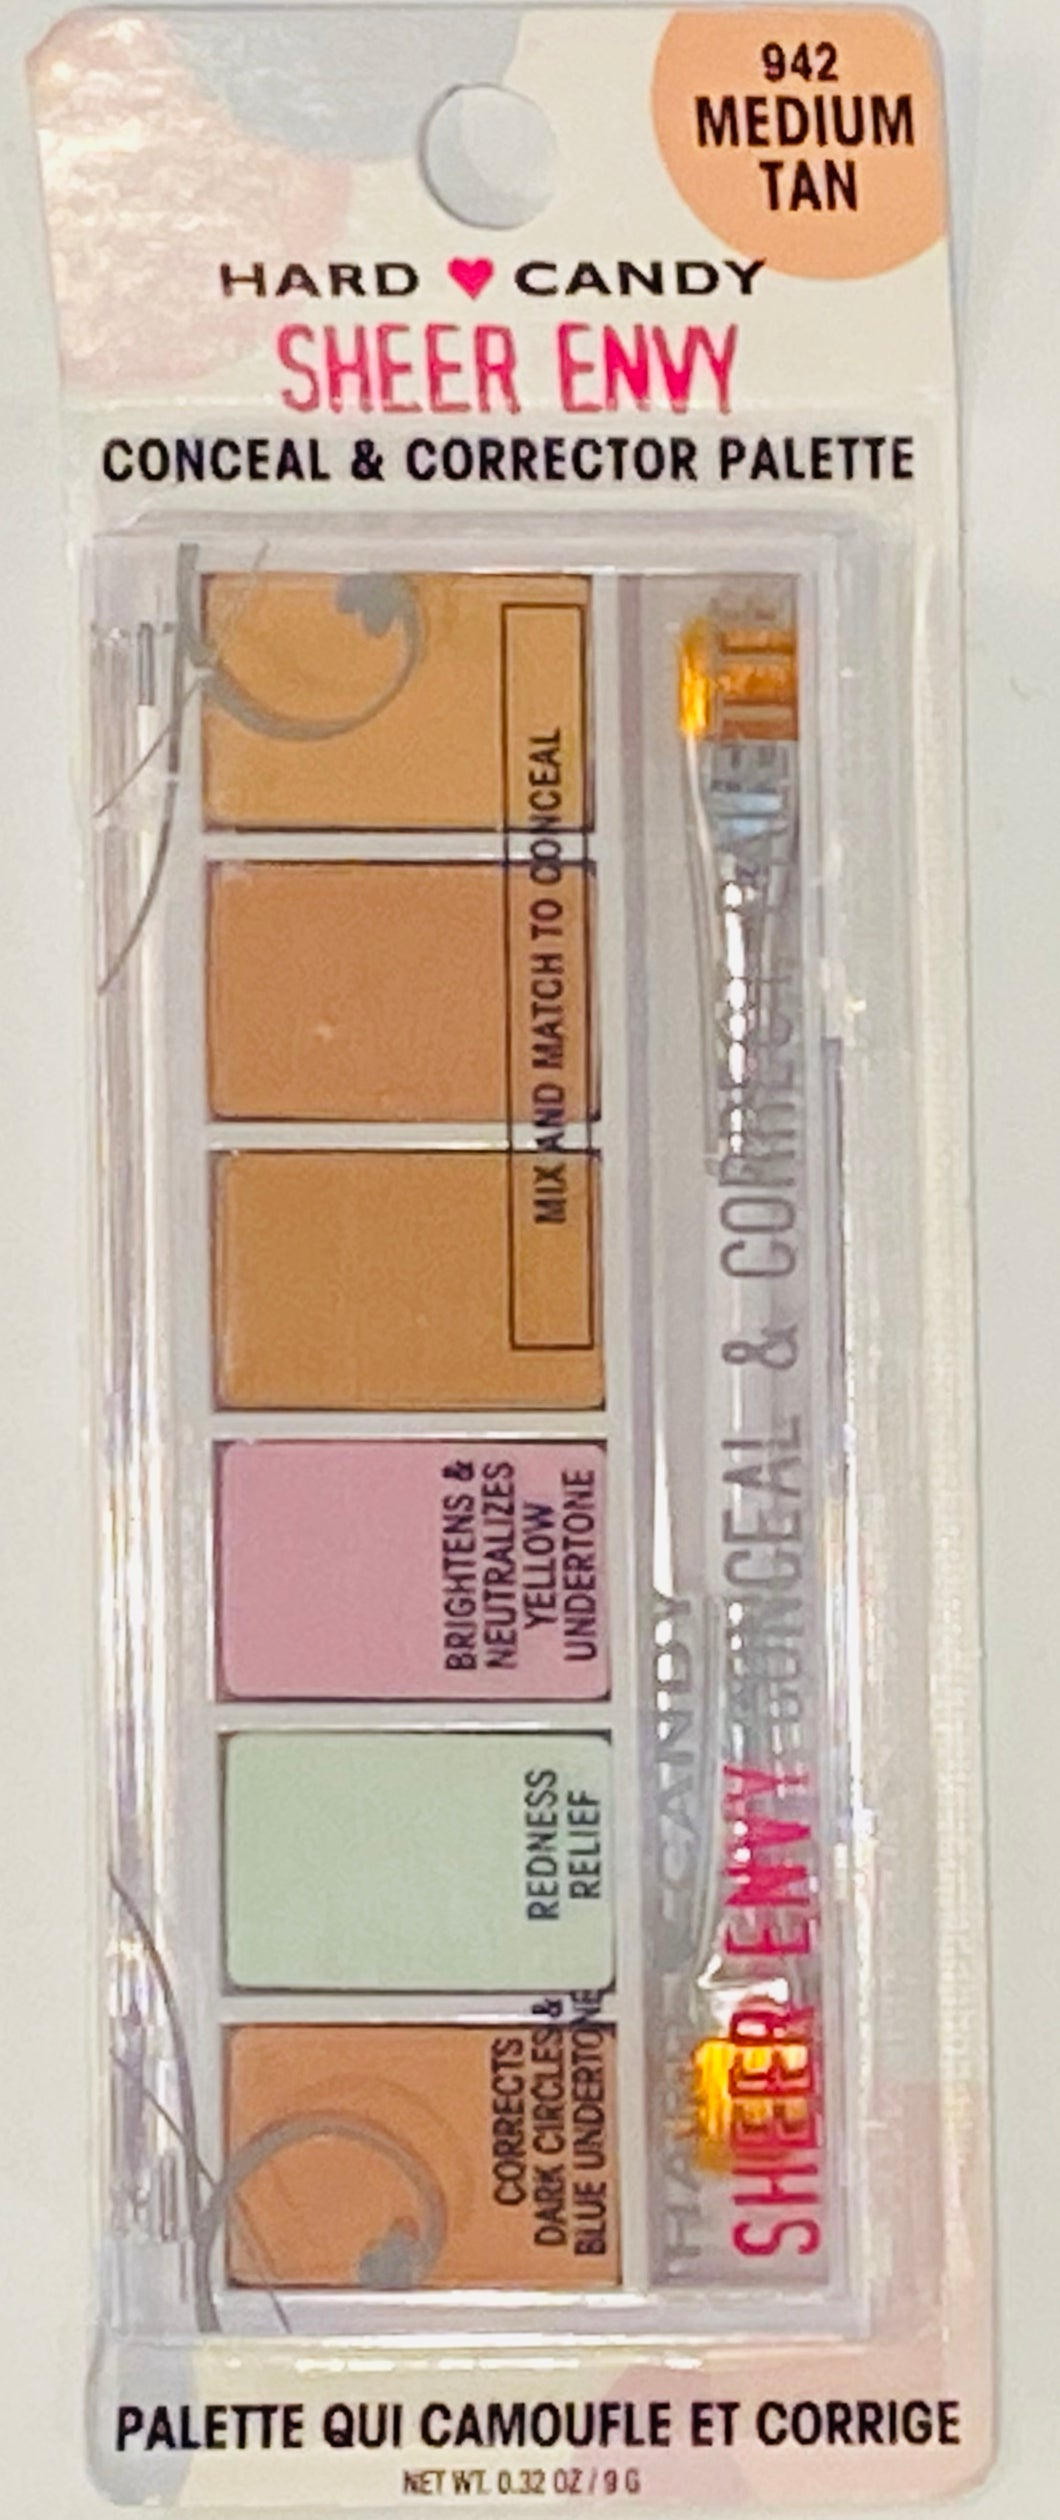 Wholesale - Hard Candy - Sheer Envy Conceal & Corrector  Palette - 942 Medium Tan - 0.32 Oz. / 9 G - 48 Pieces